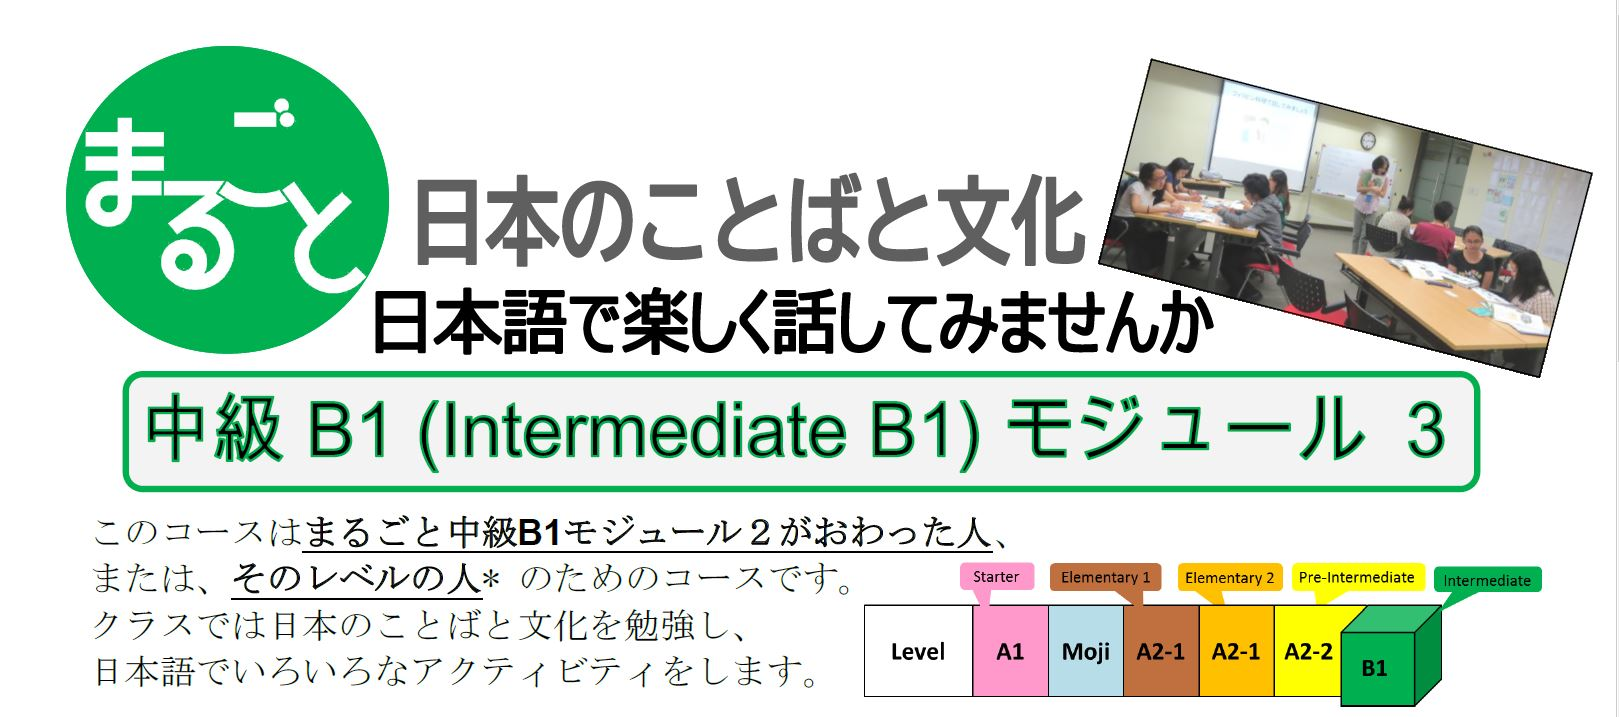 MARUGOTO Intermediate Japanese: B1 Module 3 – Deadline: July 22 (Mon.)